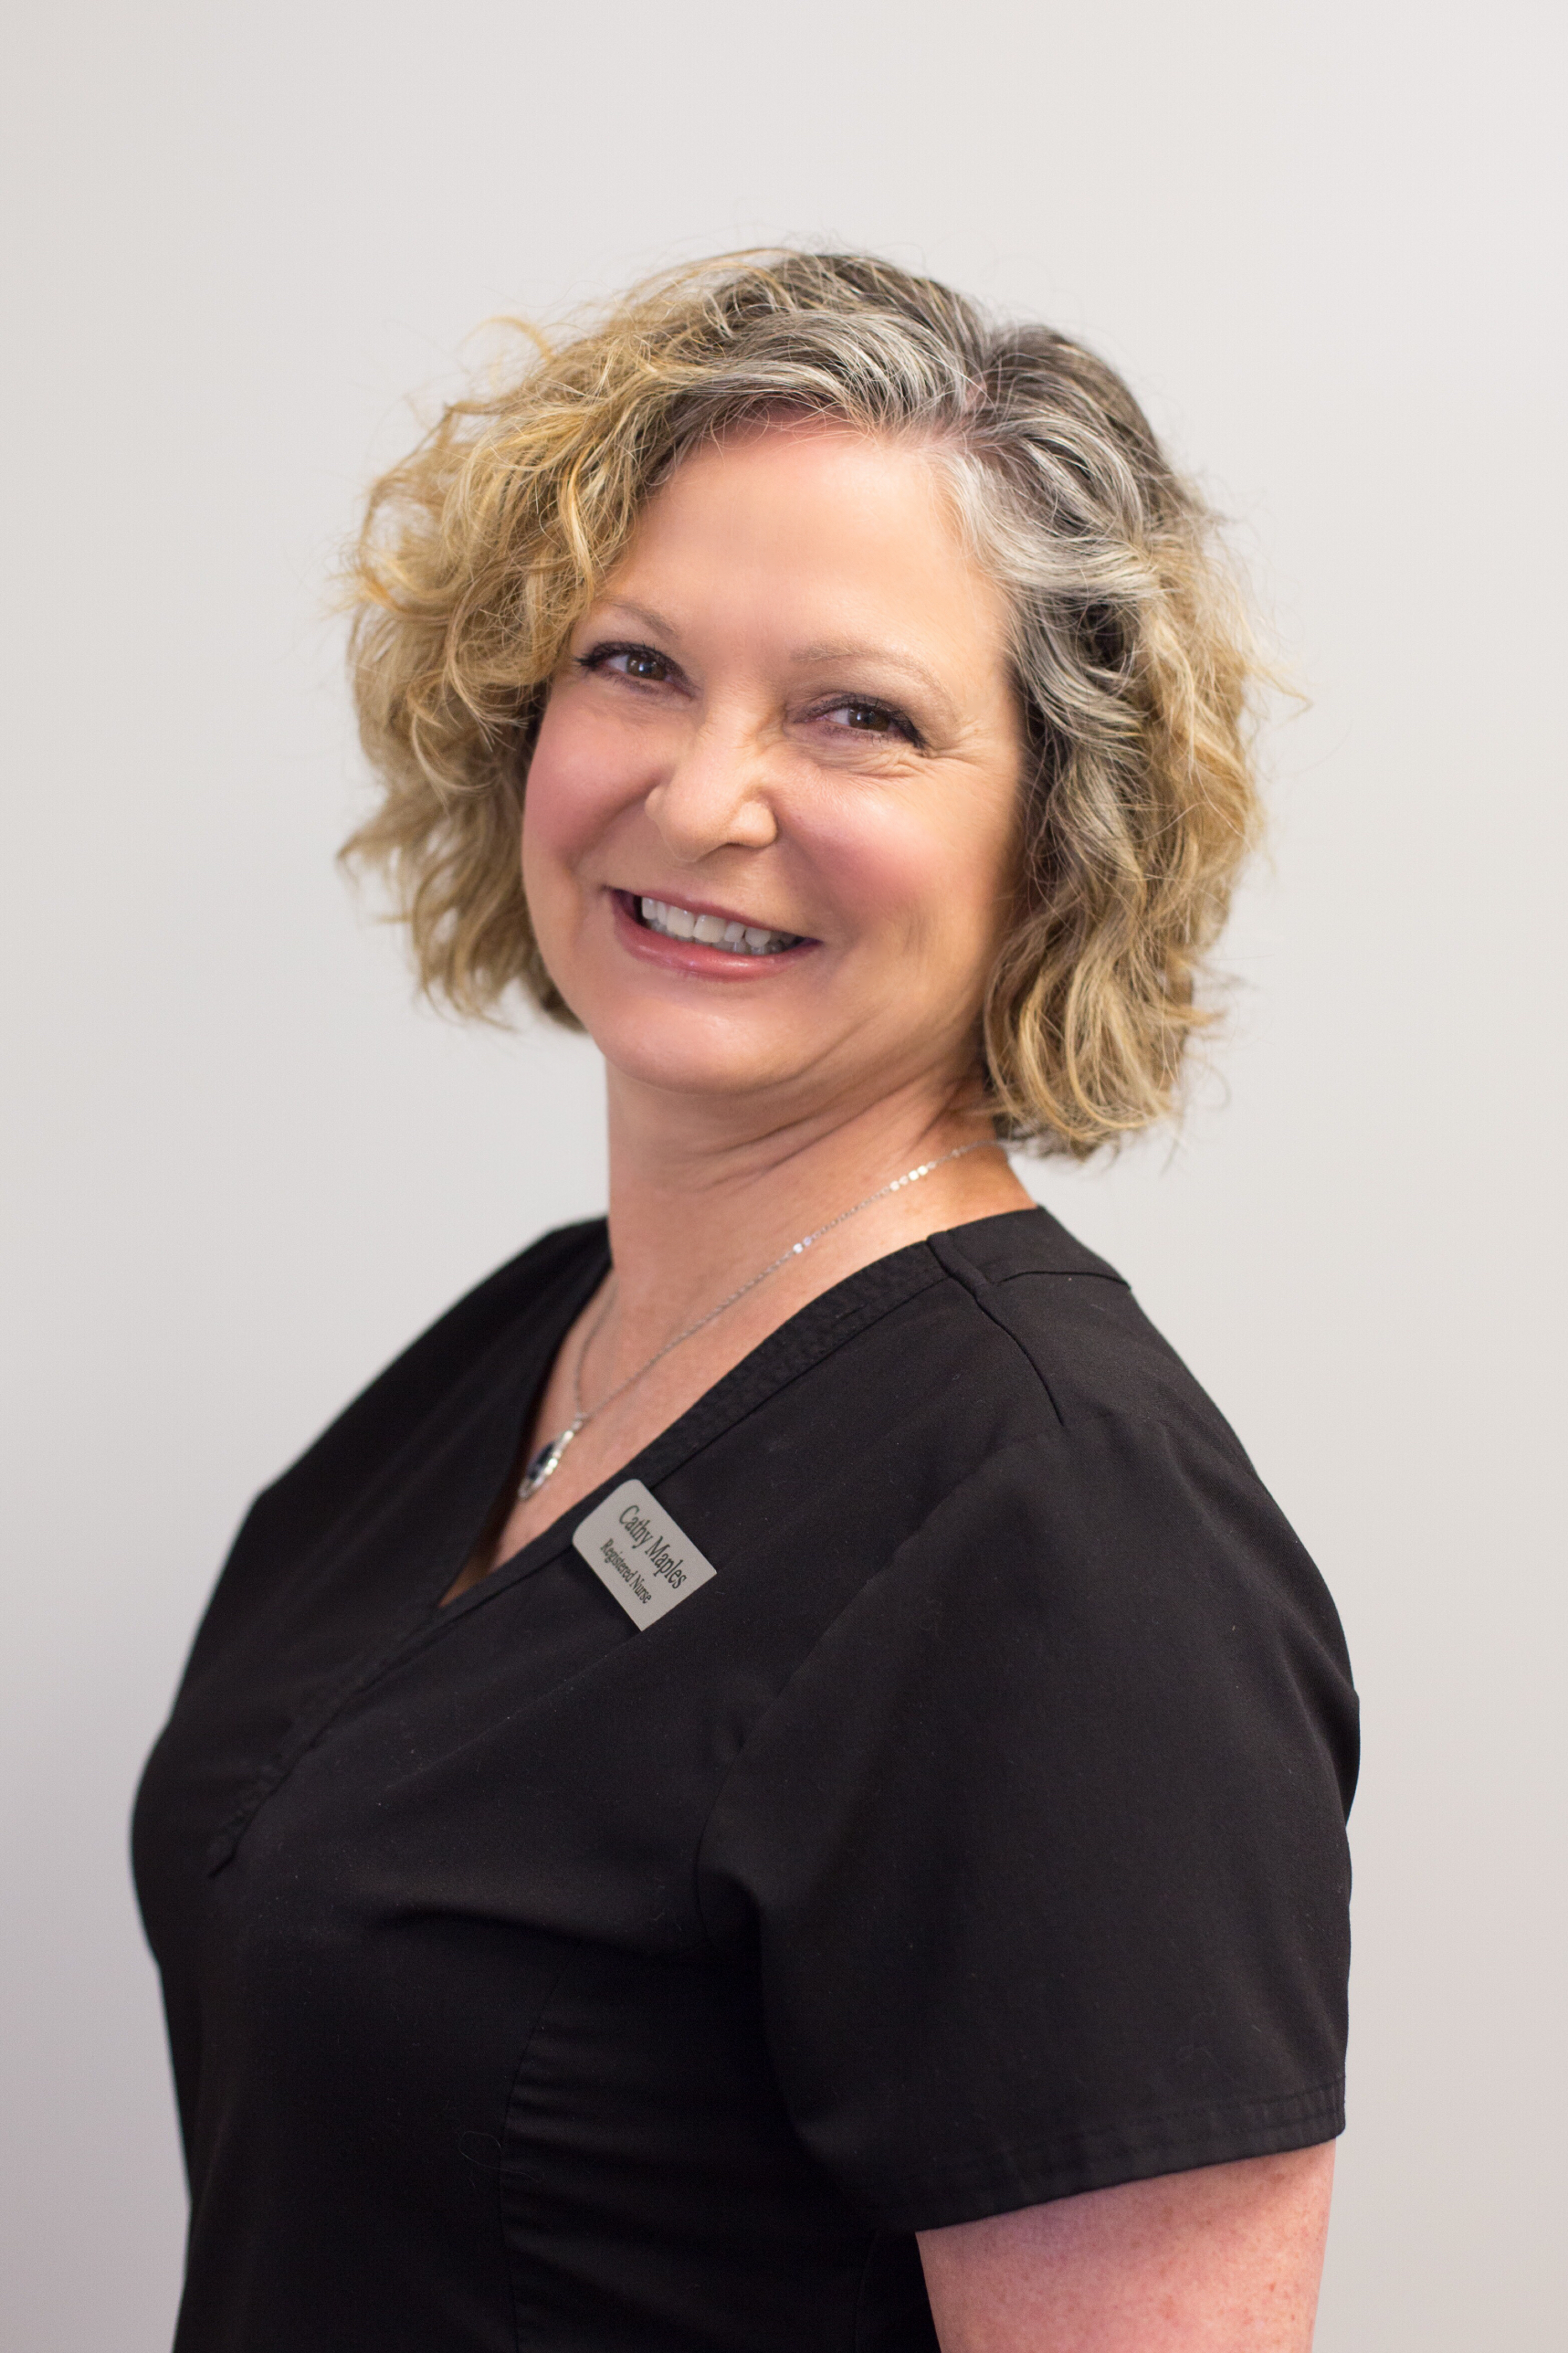 Cathy Maples   Cathy is one of our recovery room nurses who will assist you in the immediate recovery period. Cathy has many years of experience in recovering cosmetic surgery patients and will be caring for you immediately after your surgery to ensure you are comfortable before you are discharged.